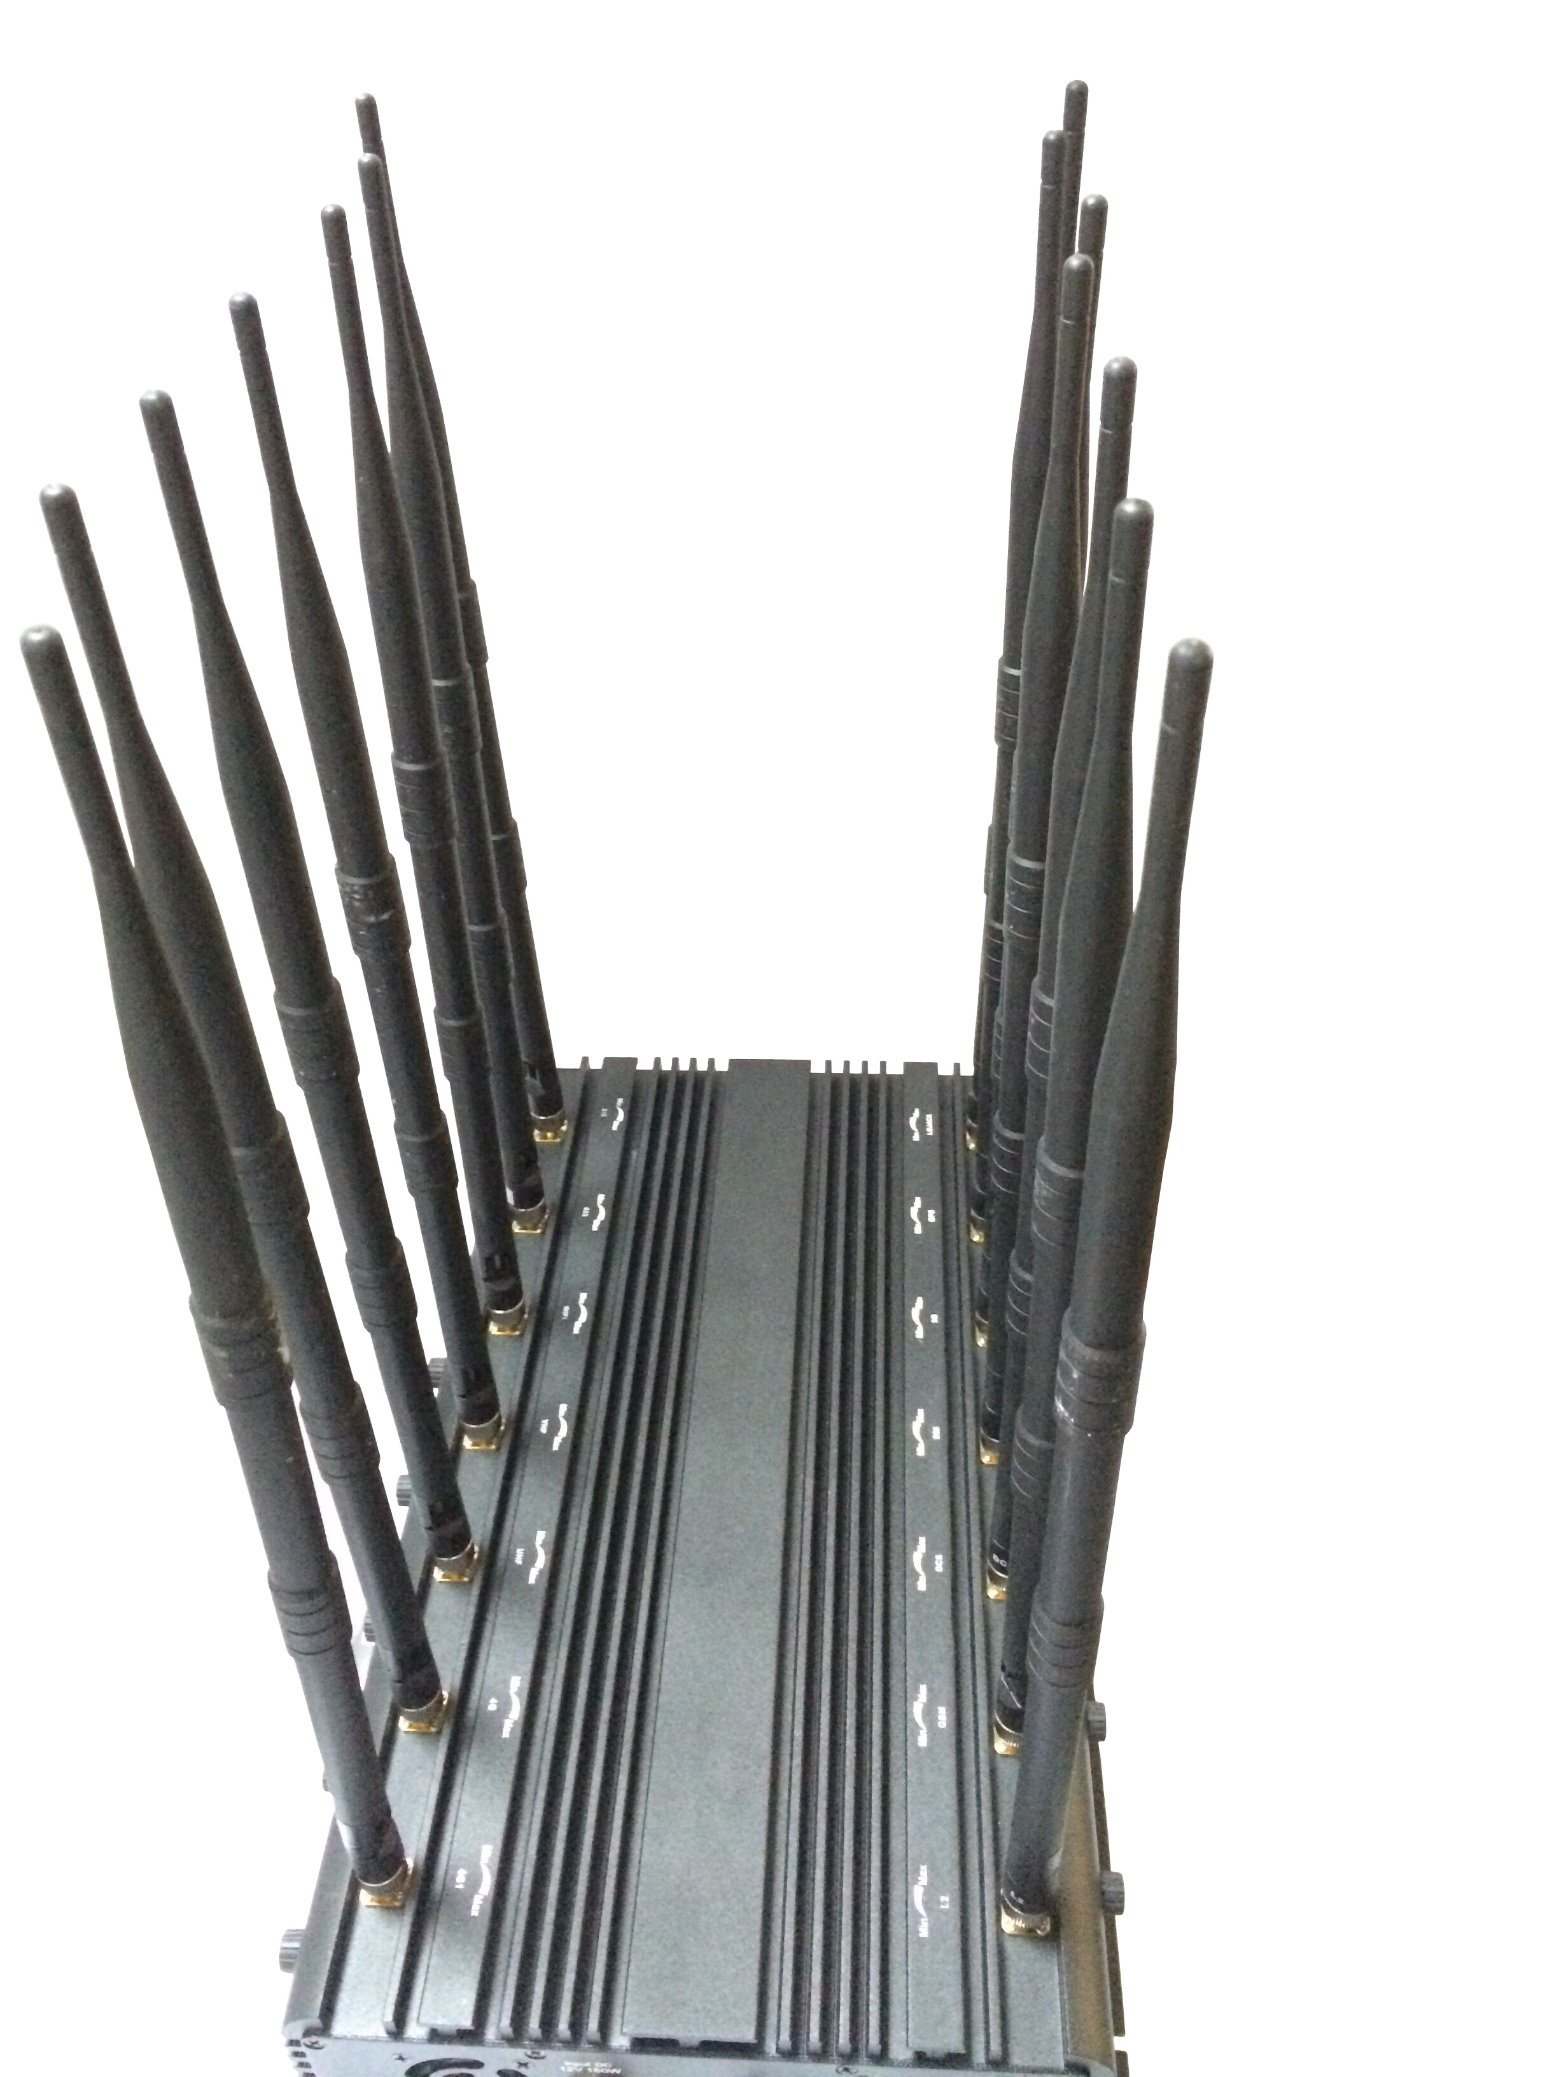 New All in One Full Frequencies Signal Jammer with 14 Antennas